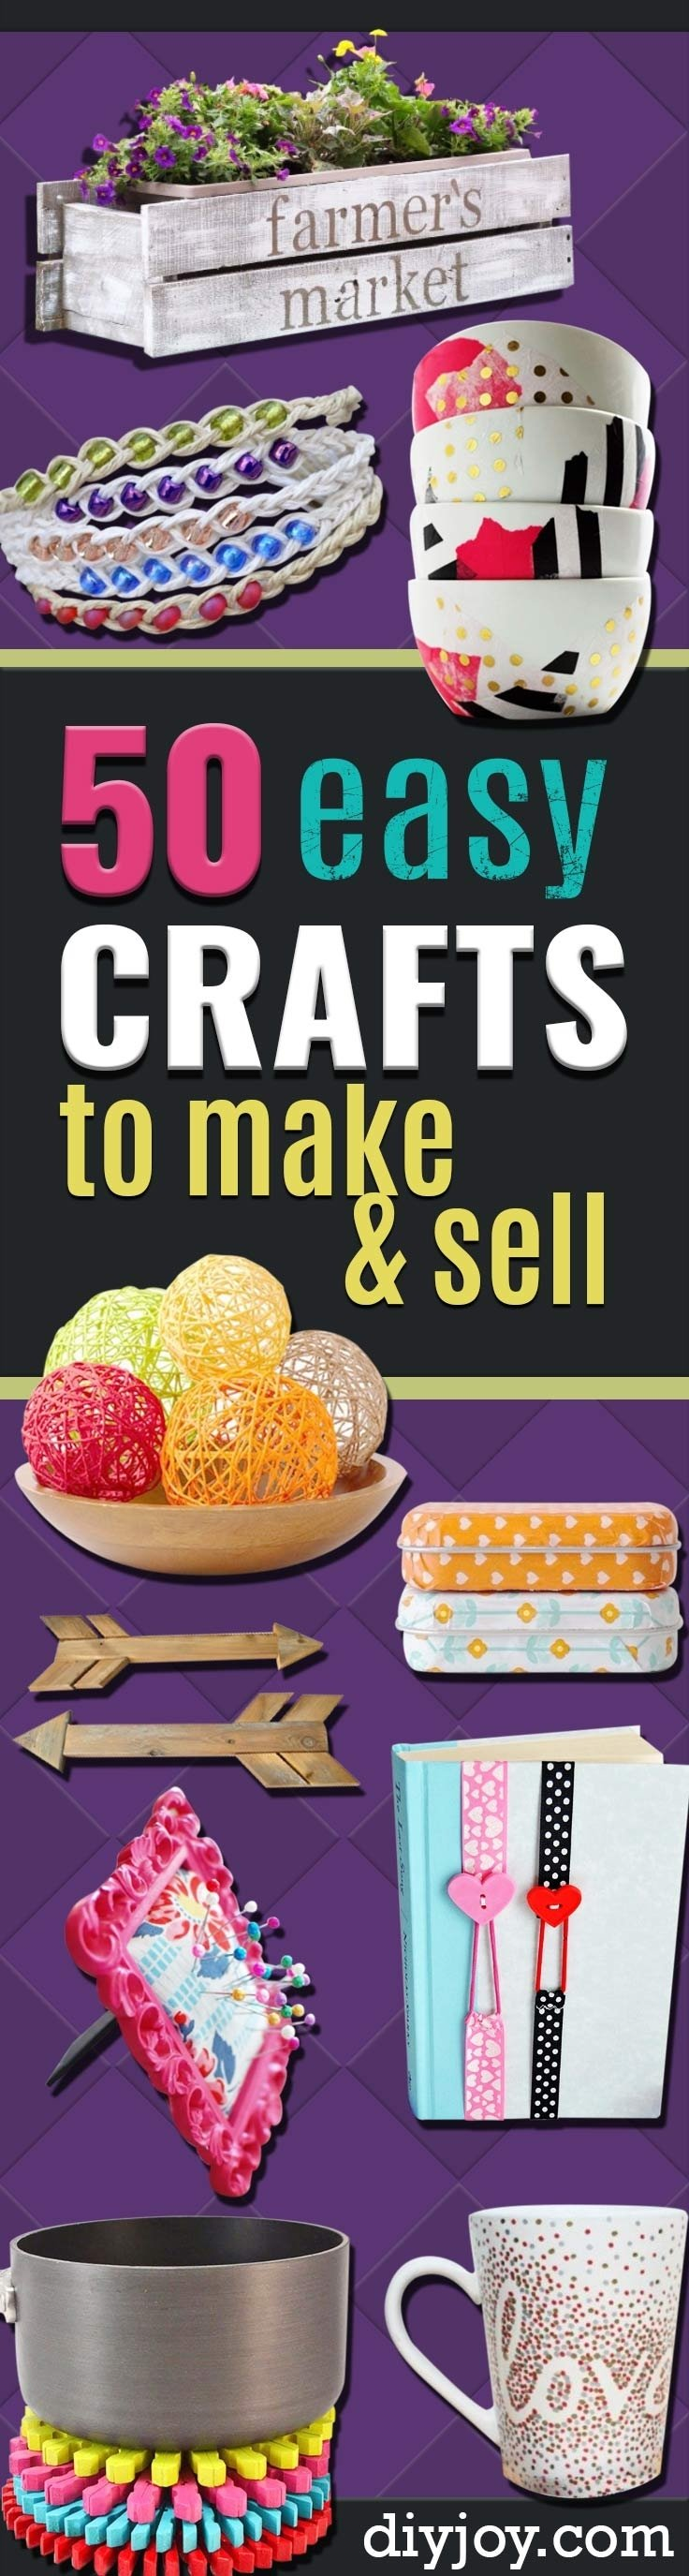 10 Spectacular Homemade Craft Ideas To Sell 50 easy crafts to make and sell 3 2020